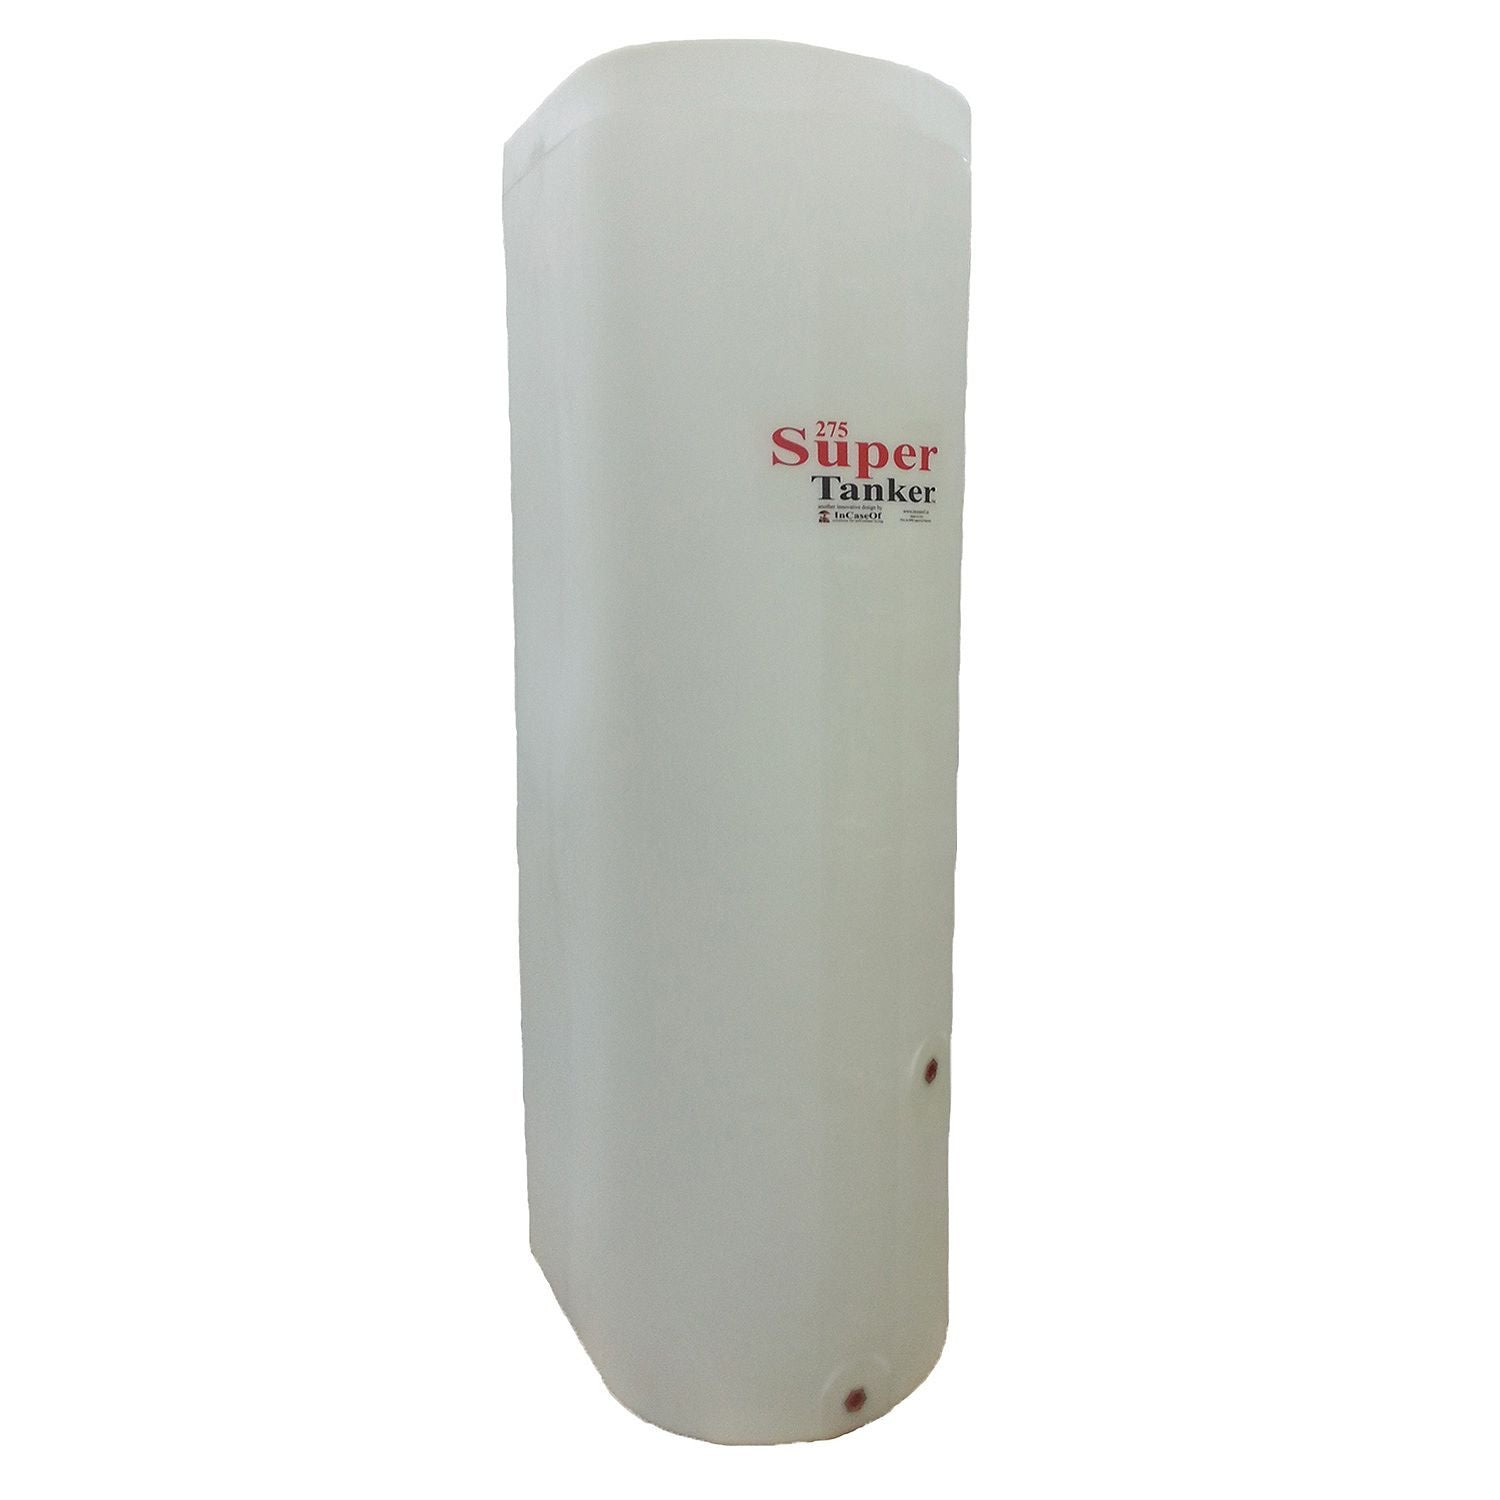 ... SuperTanker 275 Gallon Emergency Water Storage Container ...  sc 1 st  Forge Survival Supply & SuperTanker 275 Gallon Emergency Water Storage Container u2013 Forge ...